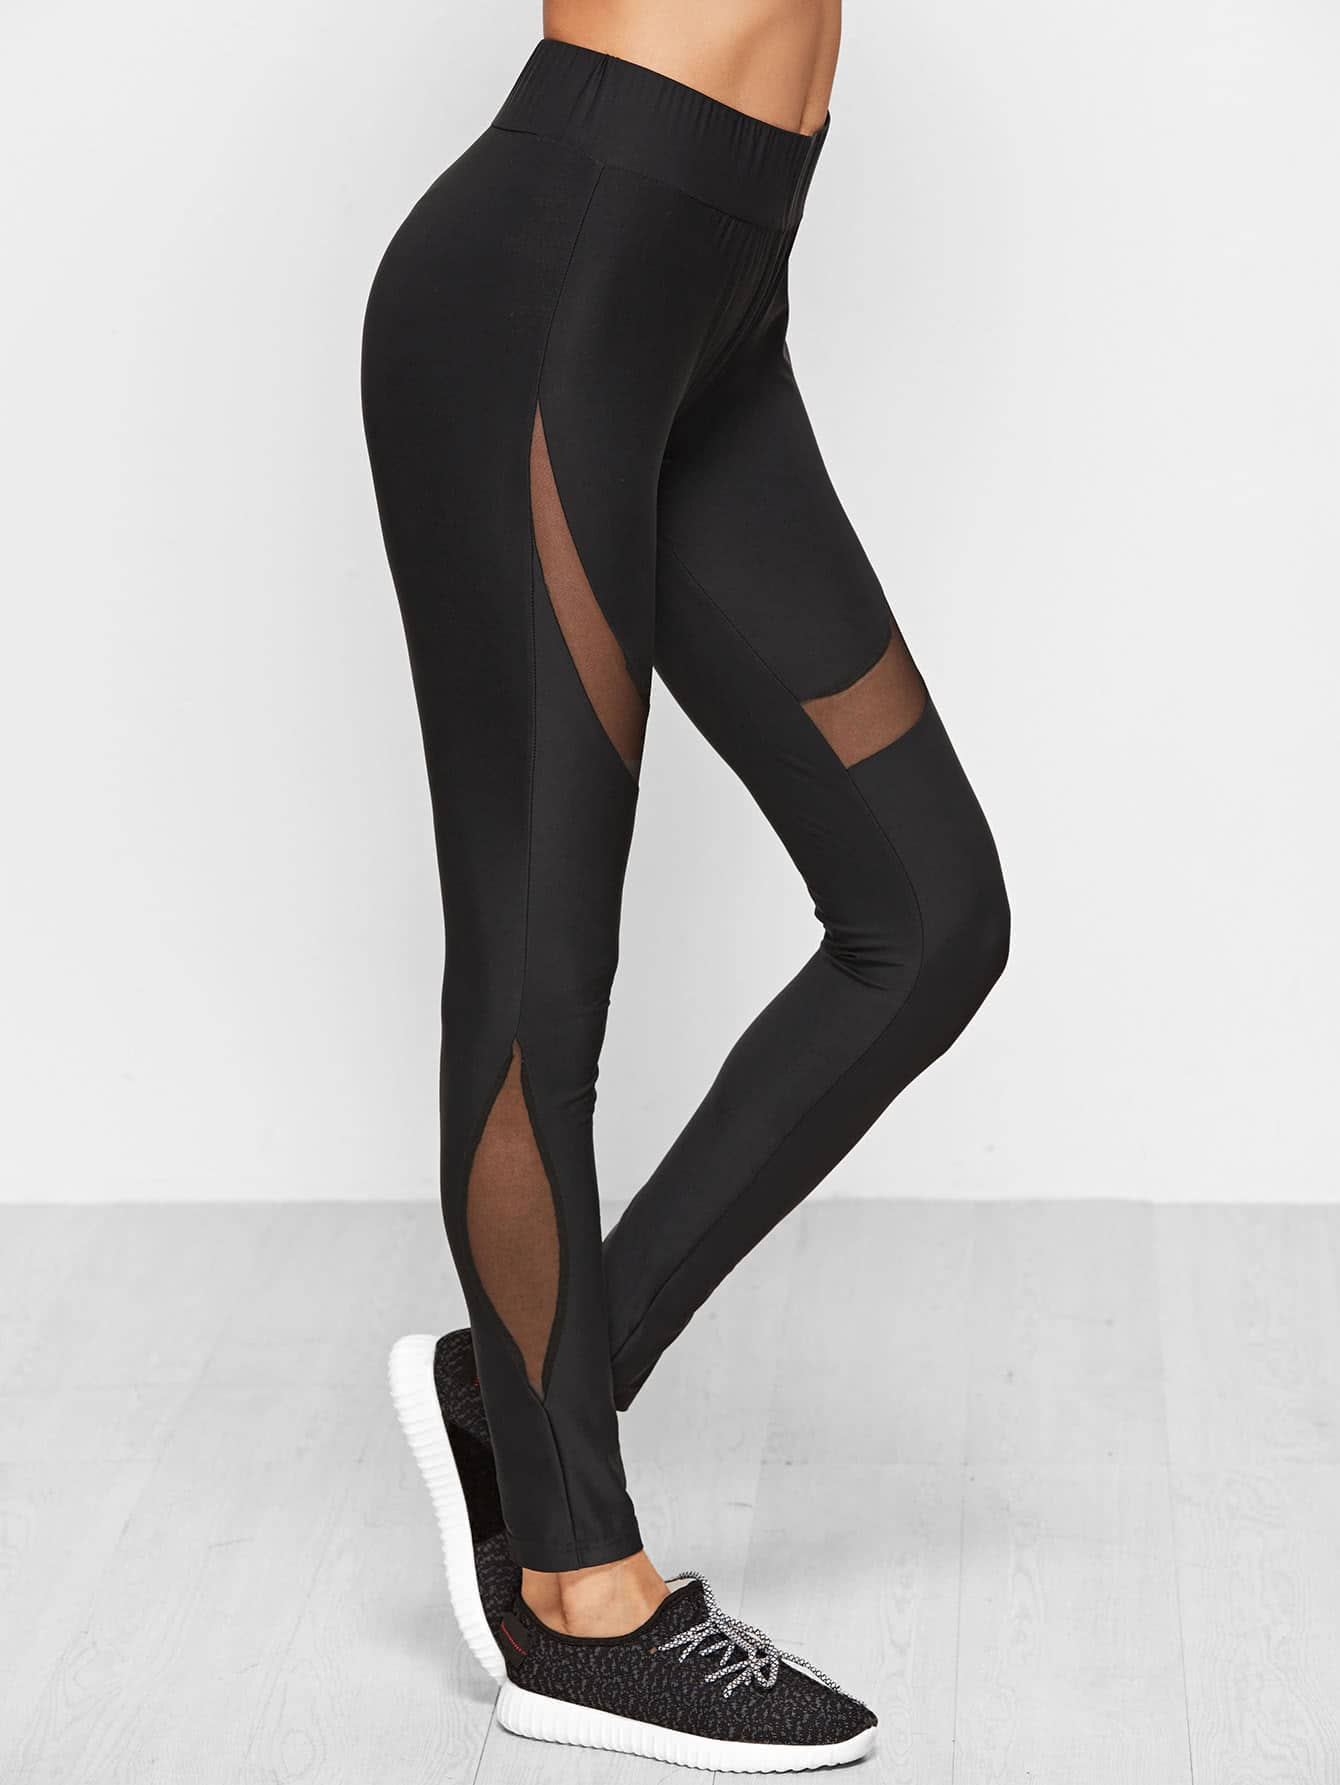 Black Wide Waistband Leggings With Mesh Panel leggings161206704